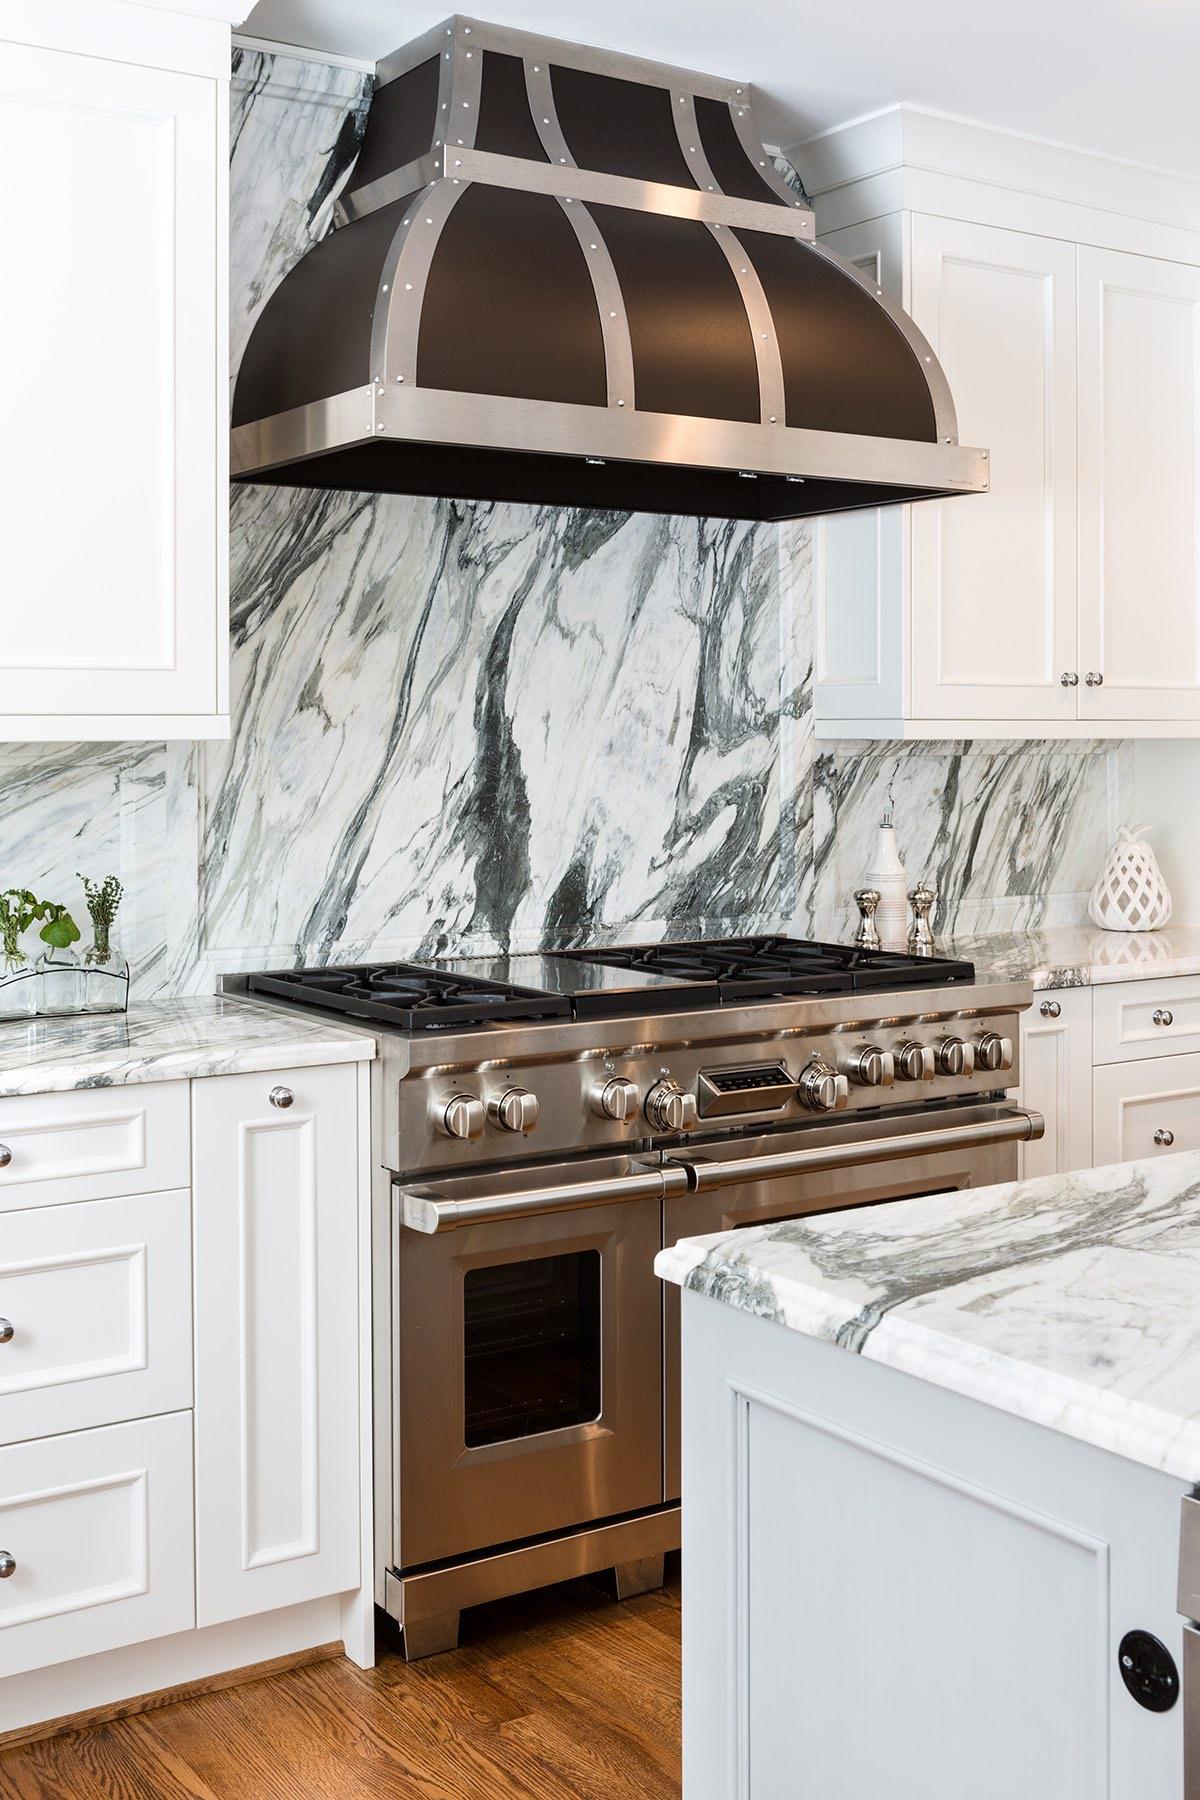 Home kitchen with stainless trim range hood, black-vein marble backsplash